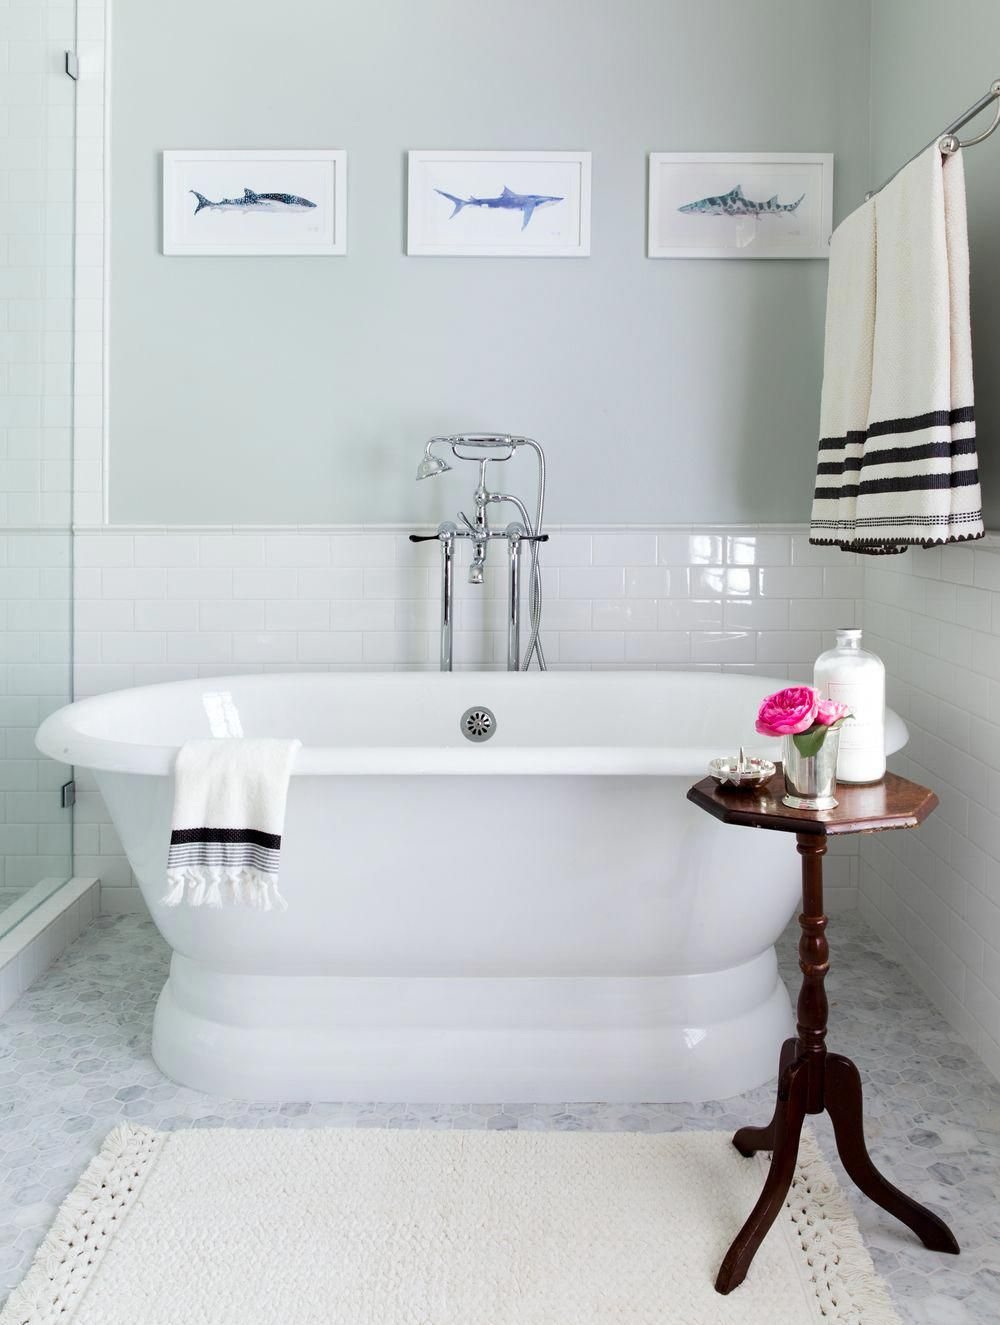 How Much Does A Bathroom Renovation Cost Bathroom Inspiration